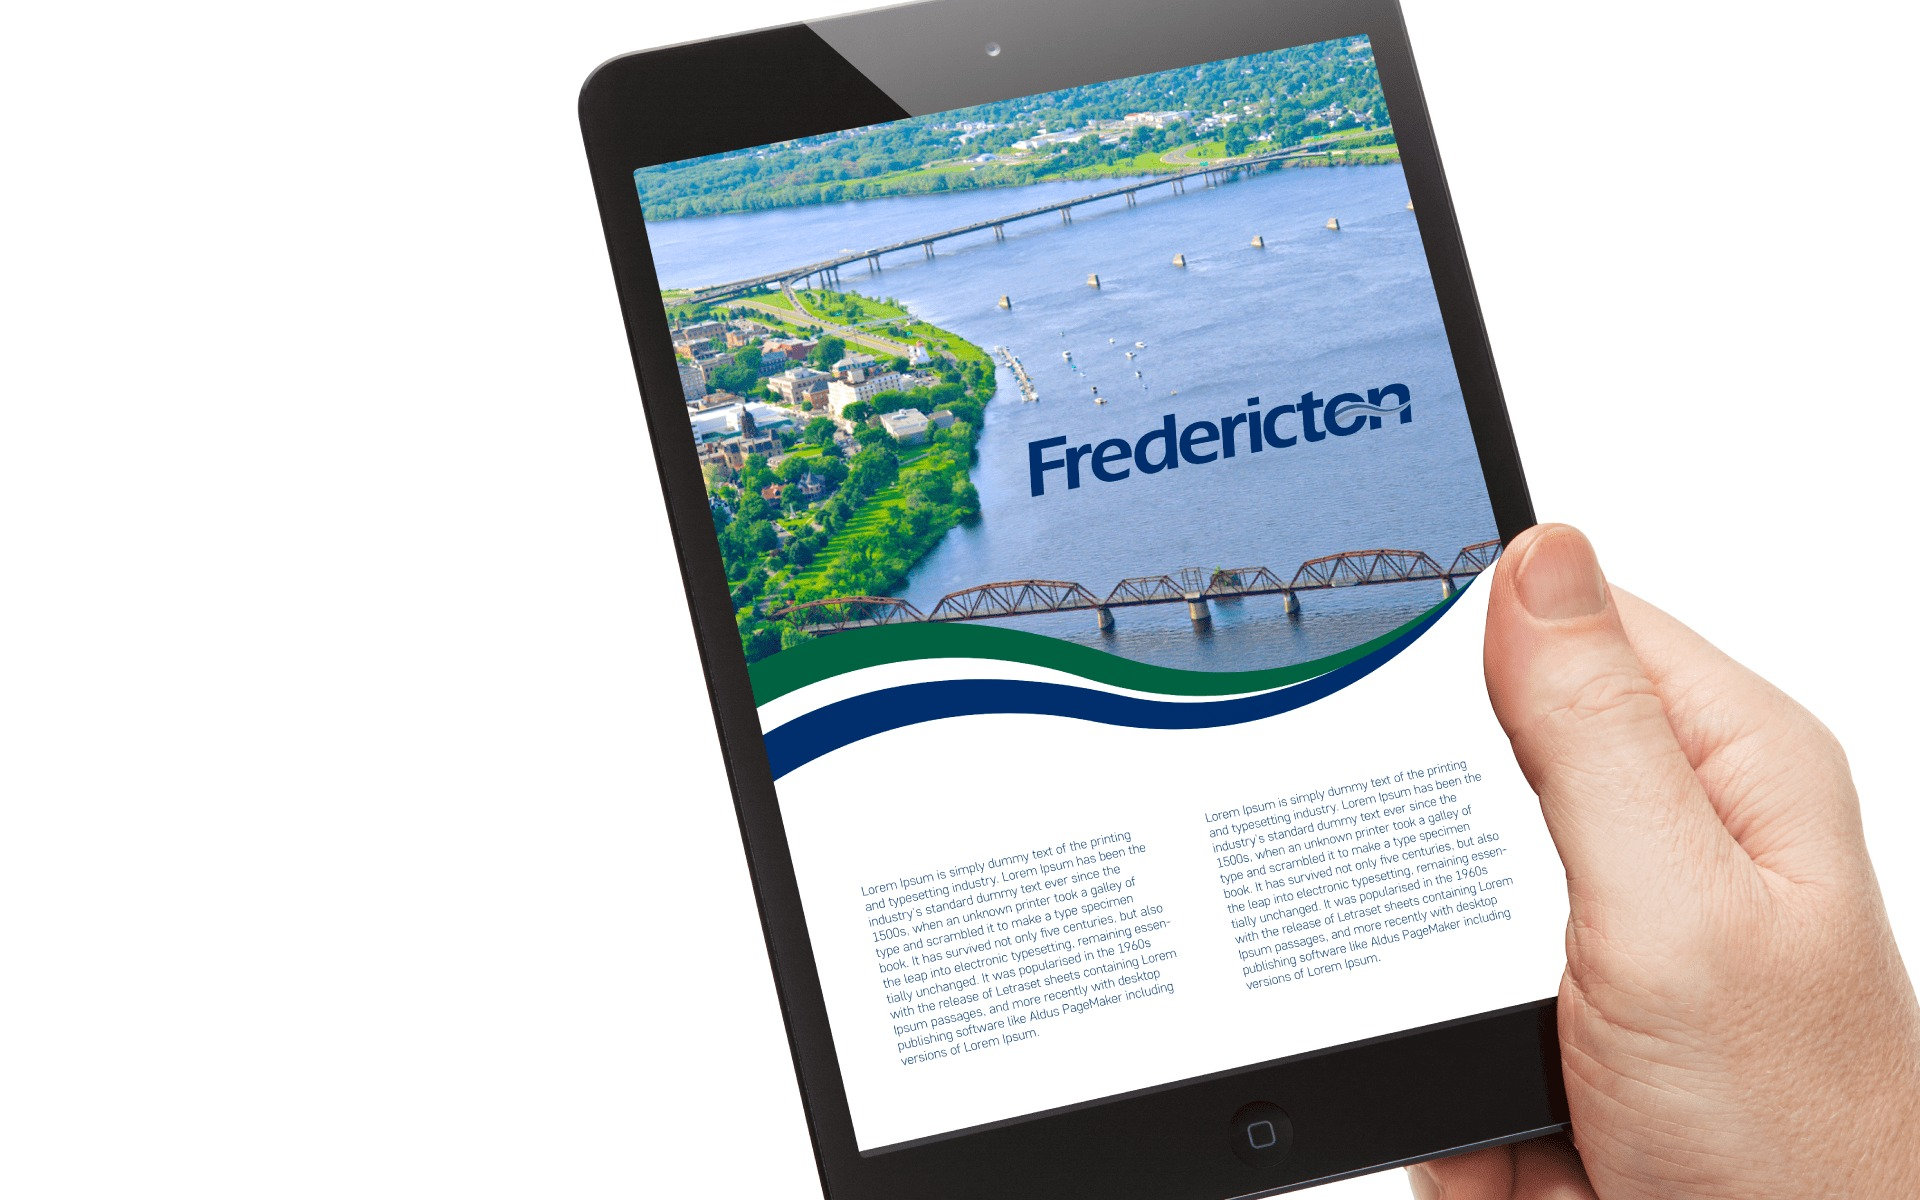 Fredricton digital advertisement